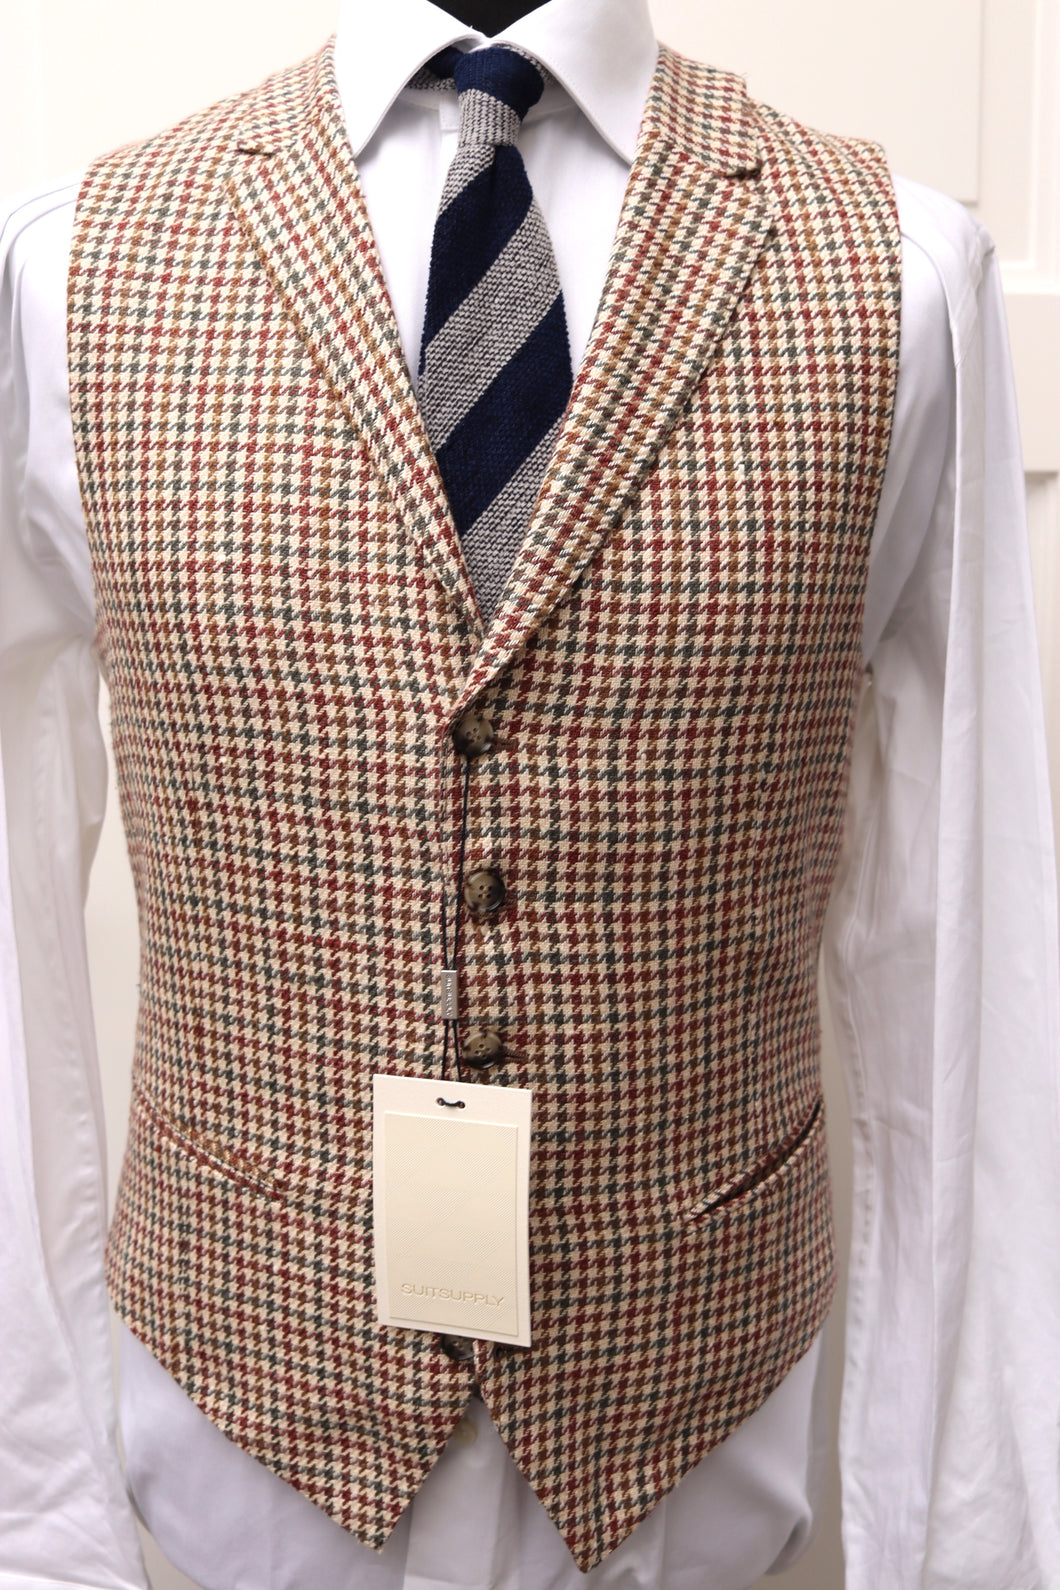 New W. Tags SUITSUPPLY Capetown Green, Brown and Burgundy Houndstooth Silk Waistcoat - Size 38R